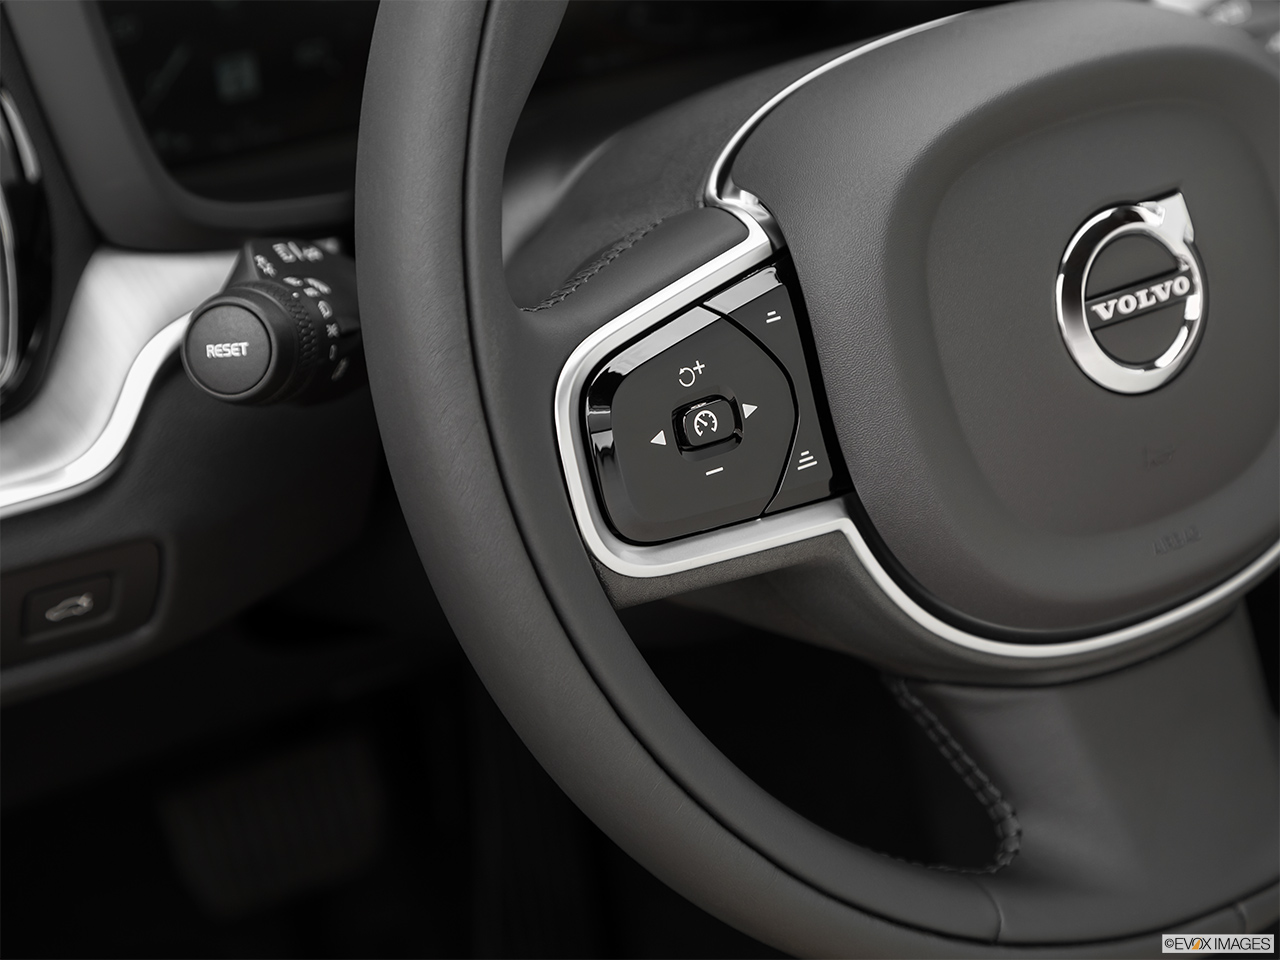 2020 Volvo V60 Cross Country T5 AWD Steering Wheel Controls (Left Side)